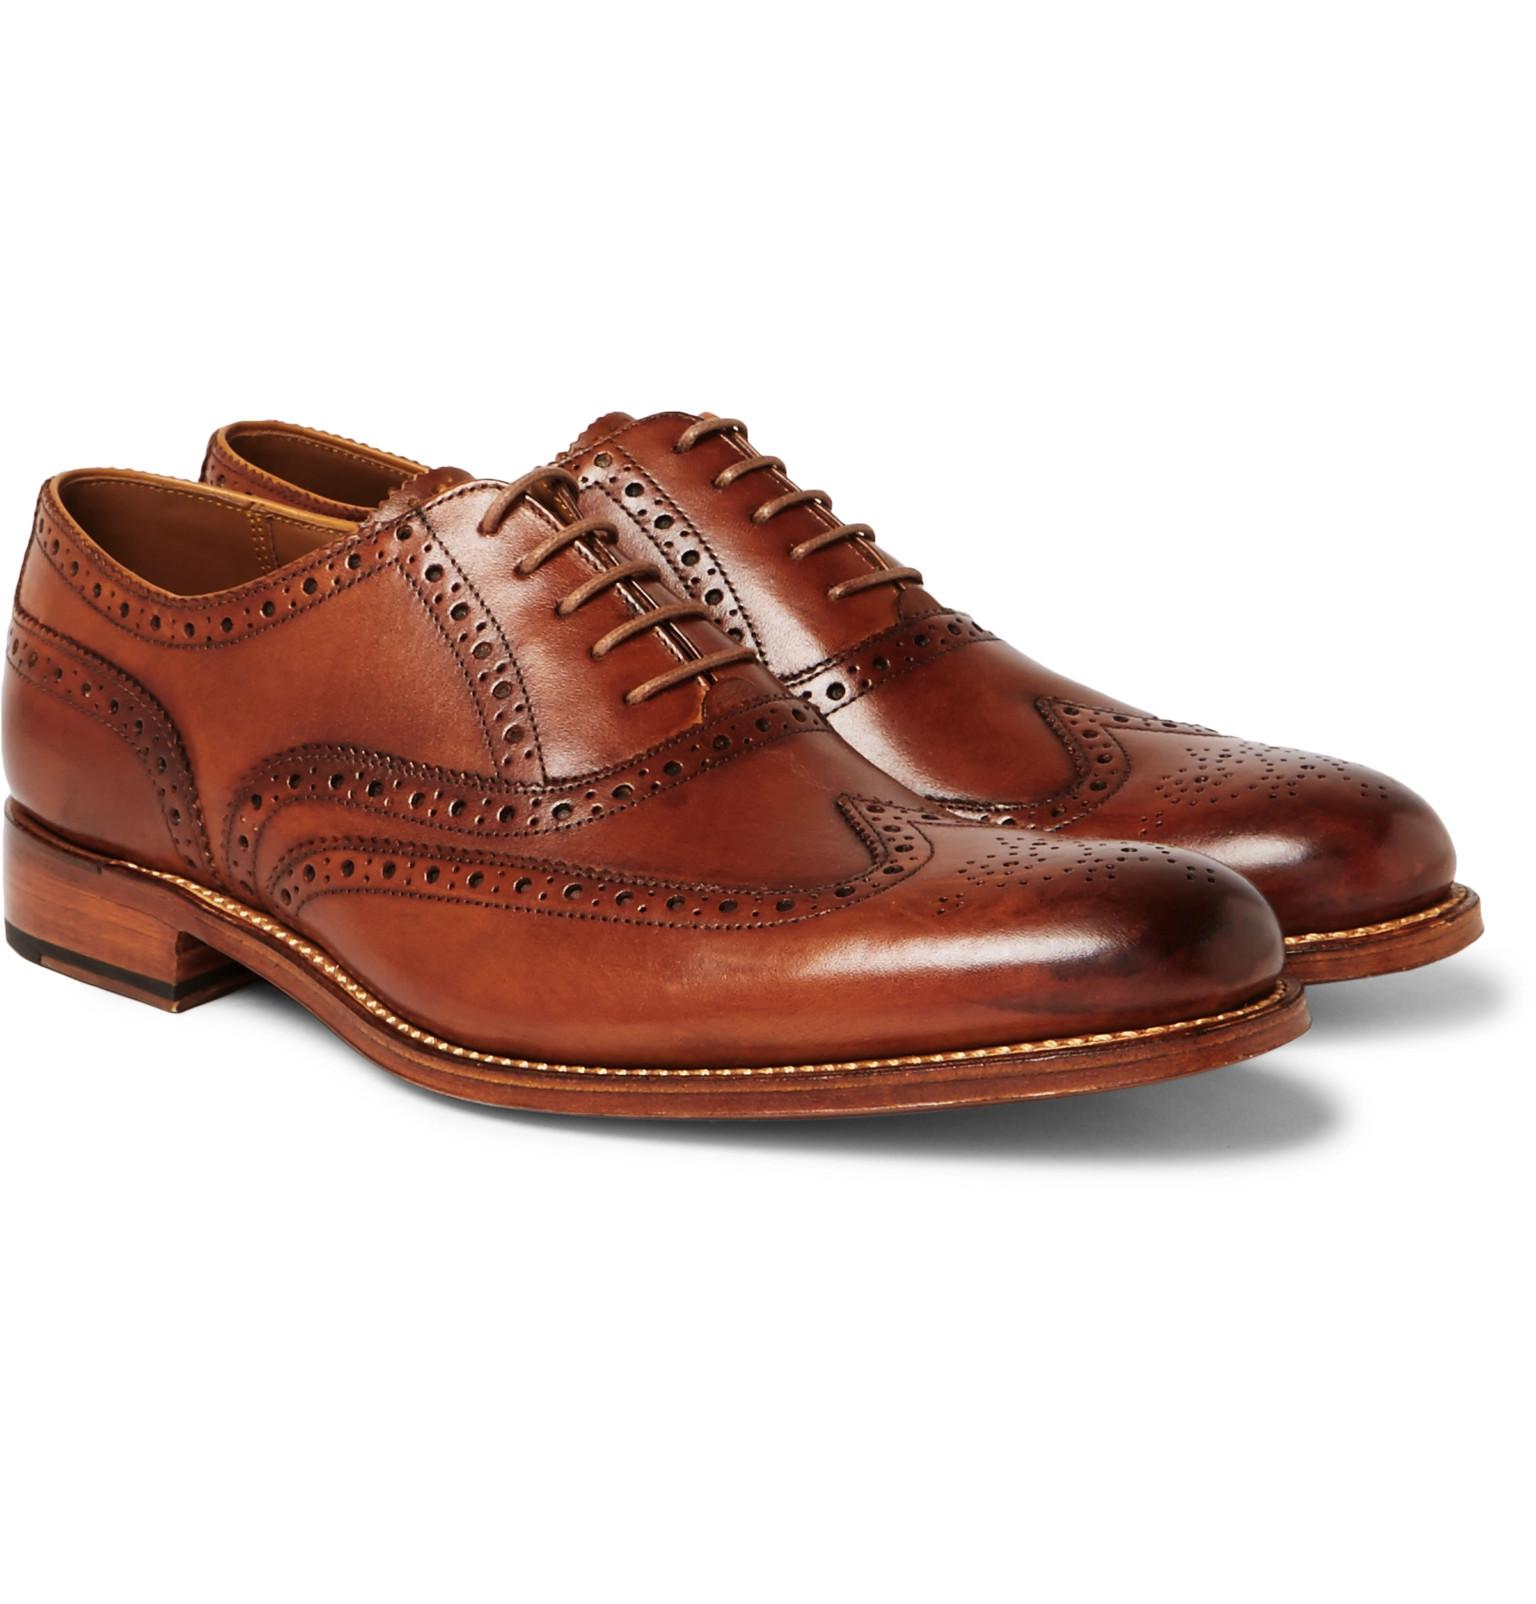 e21c6f98650a GRENSON - Brown Dylan Burnished-leather Wingtip Brogues for Men - Lyst.  View fullscreen